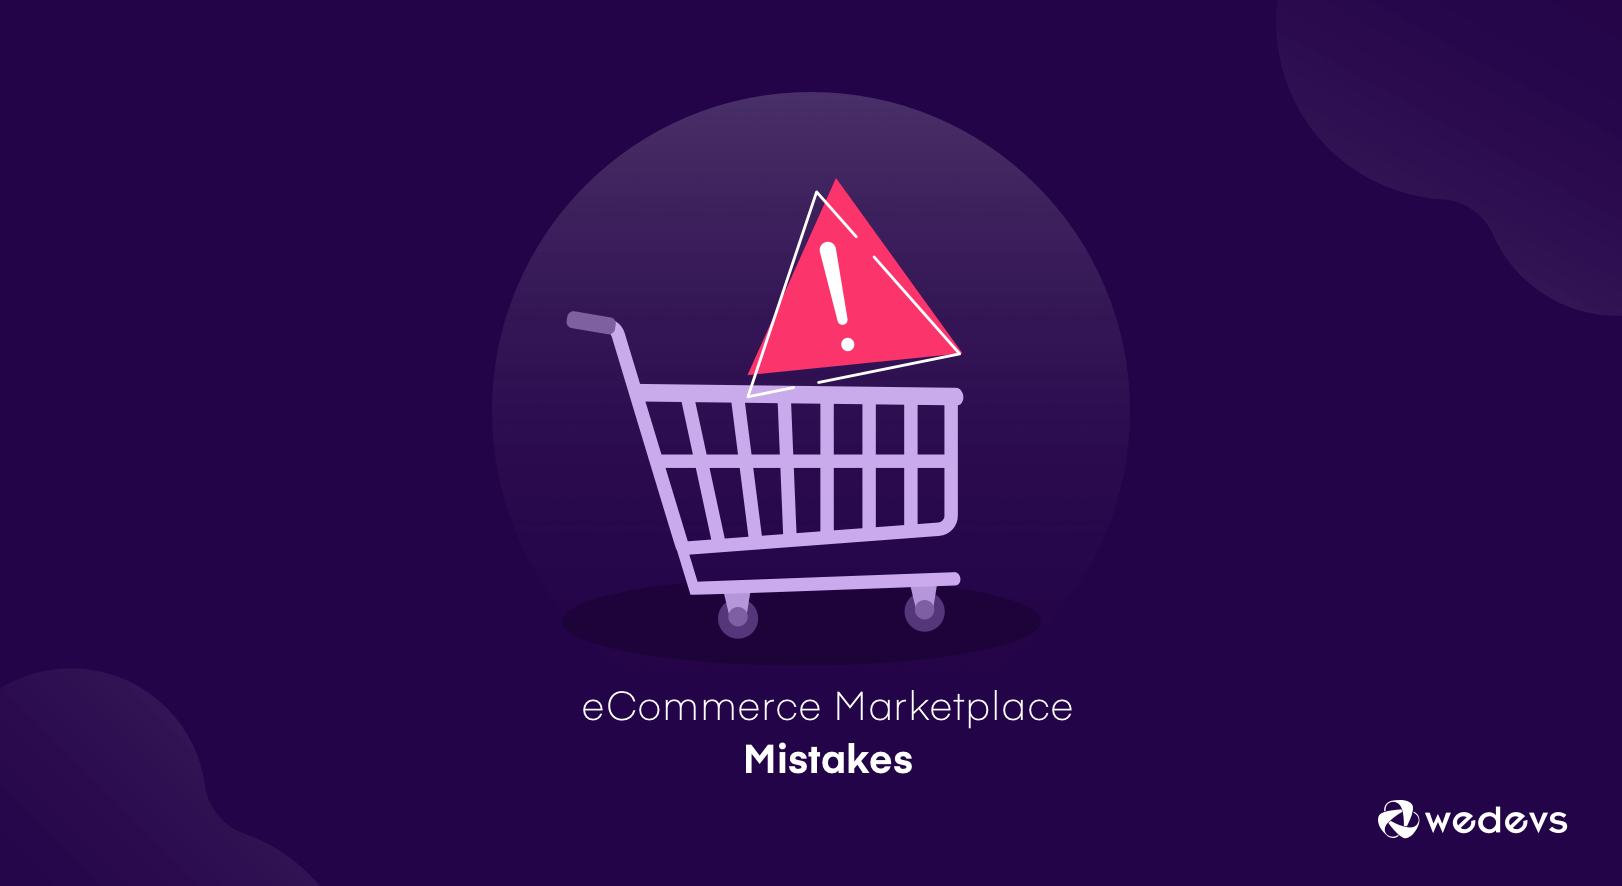 15+ Common Ecommerce Mistakes You Should Avoid in 2021